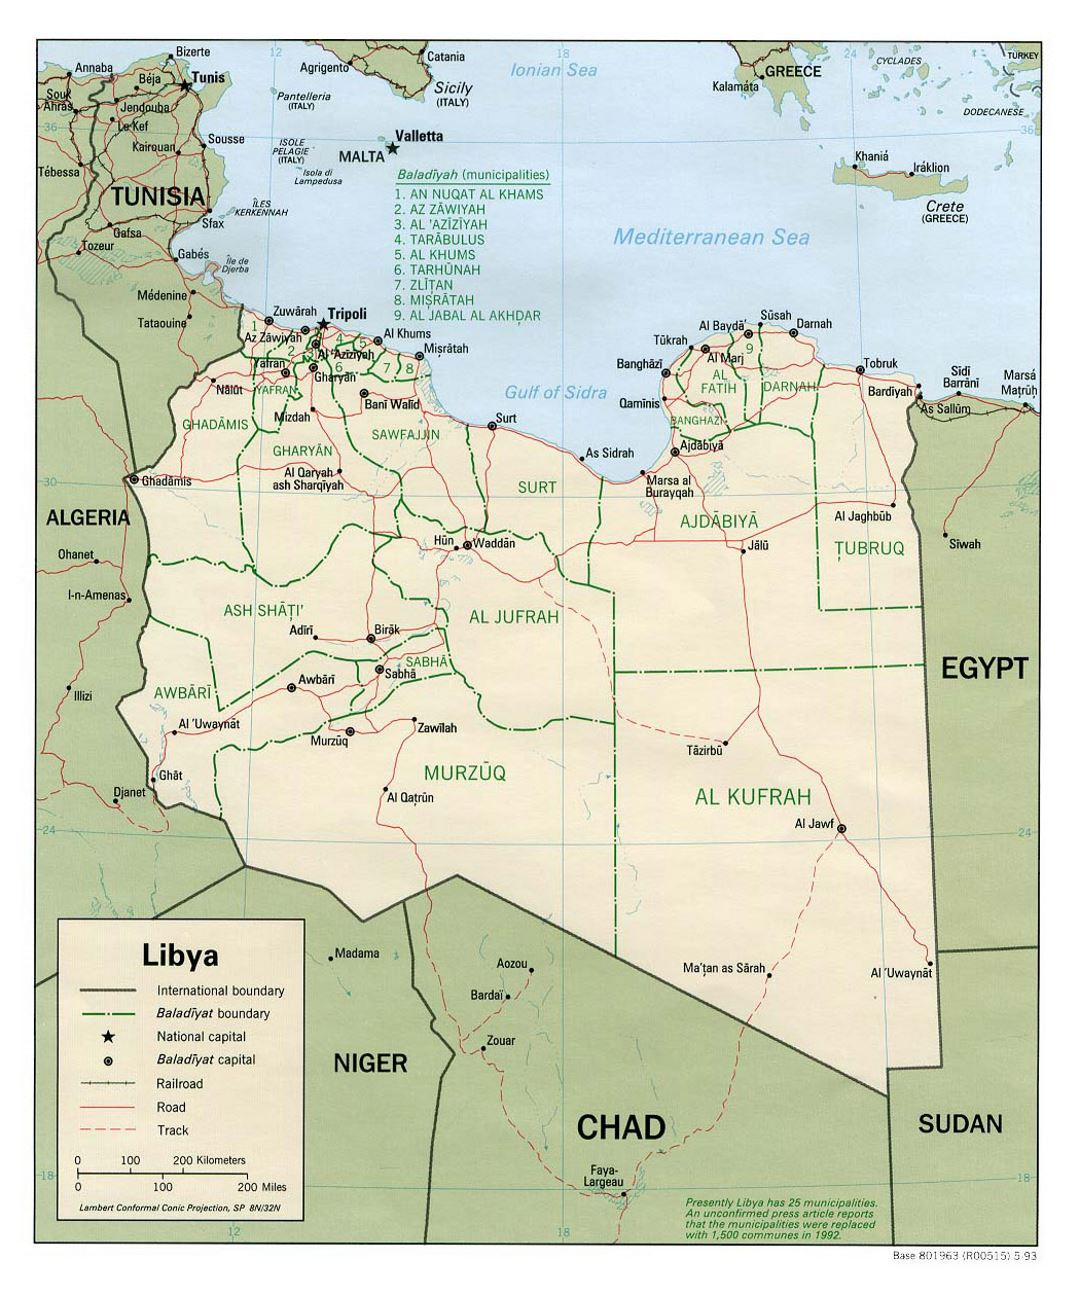 Detailed political and administrative map of Libya with roads, railroads and major cities - 1993